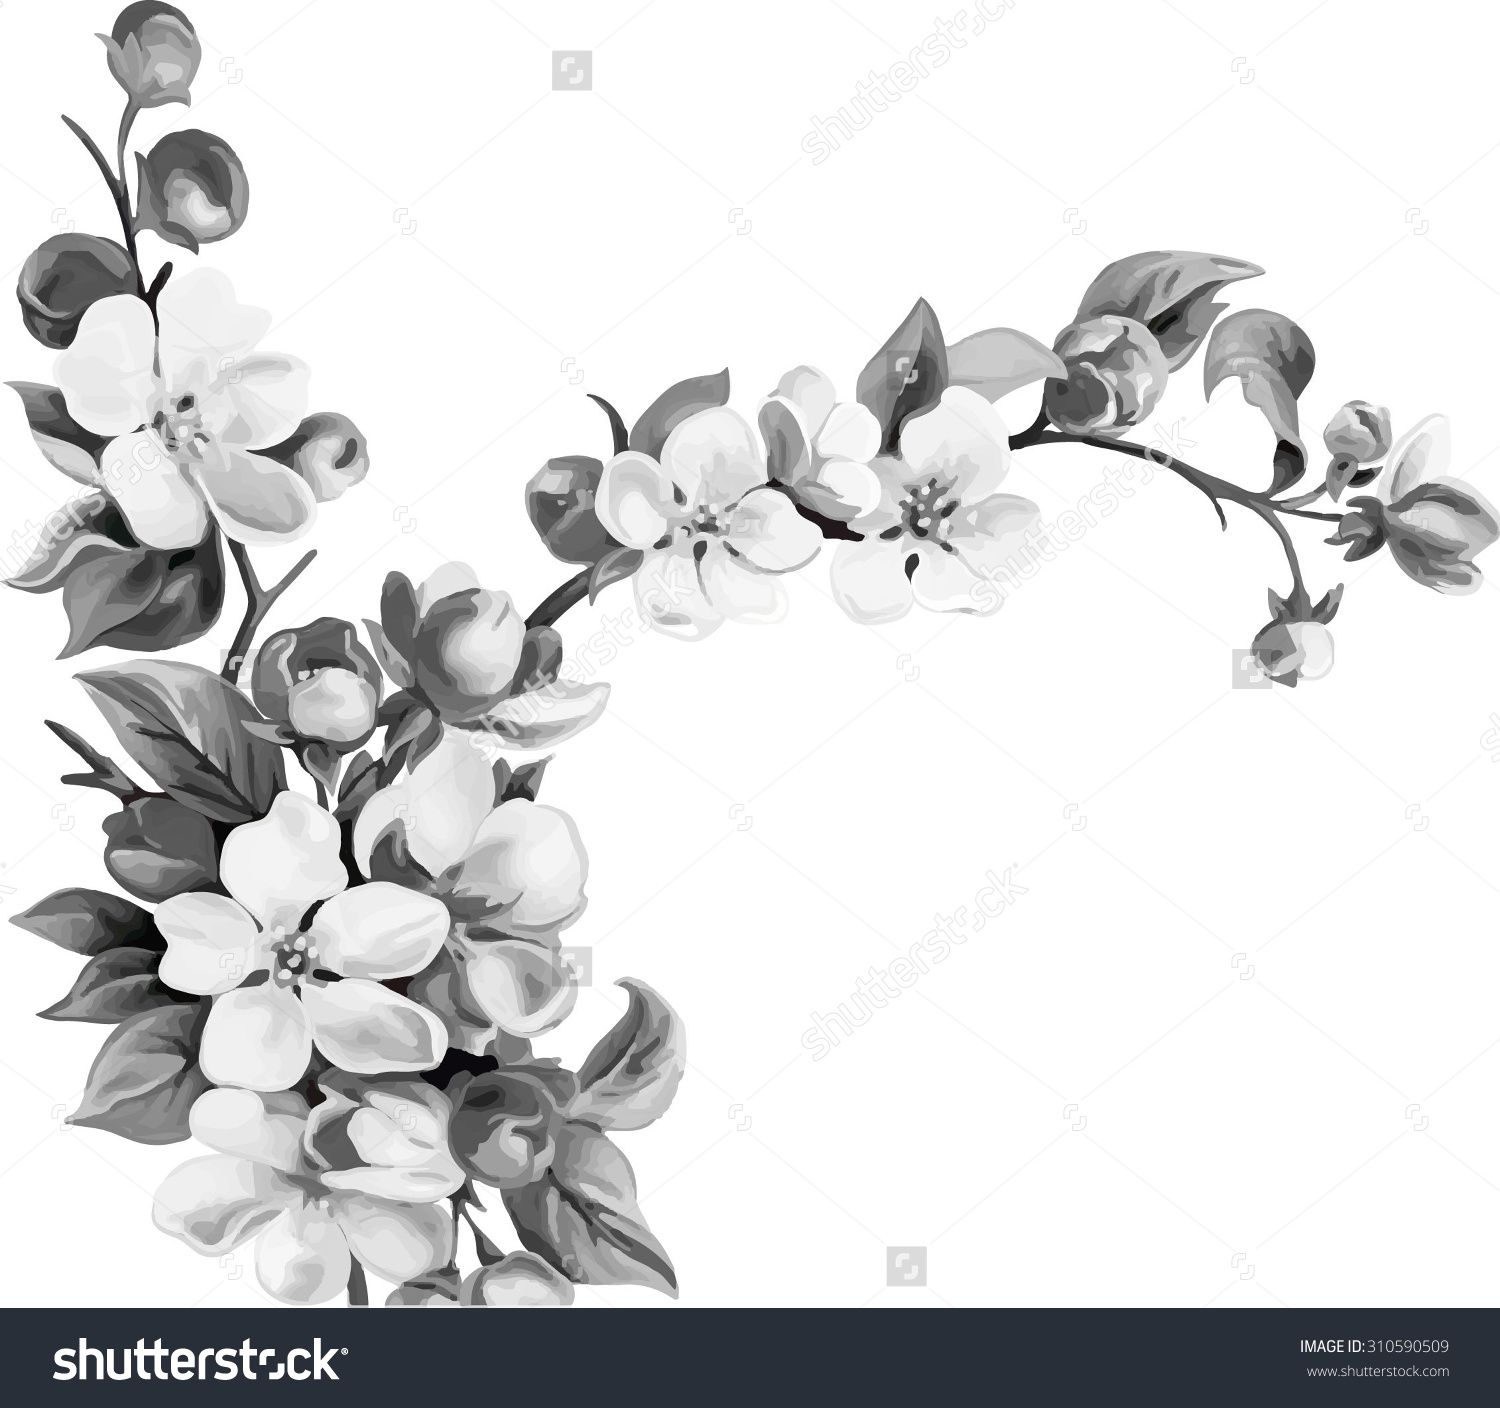 Vector Illustration Of Cherry Blossom Flowers With Leaves Tree Branch Black And White Cherry Tree Tattoos Tree Tattoo Black Cherry Blossom Flowers